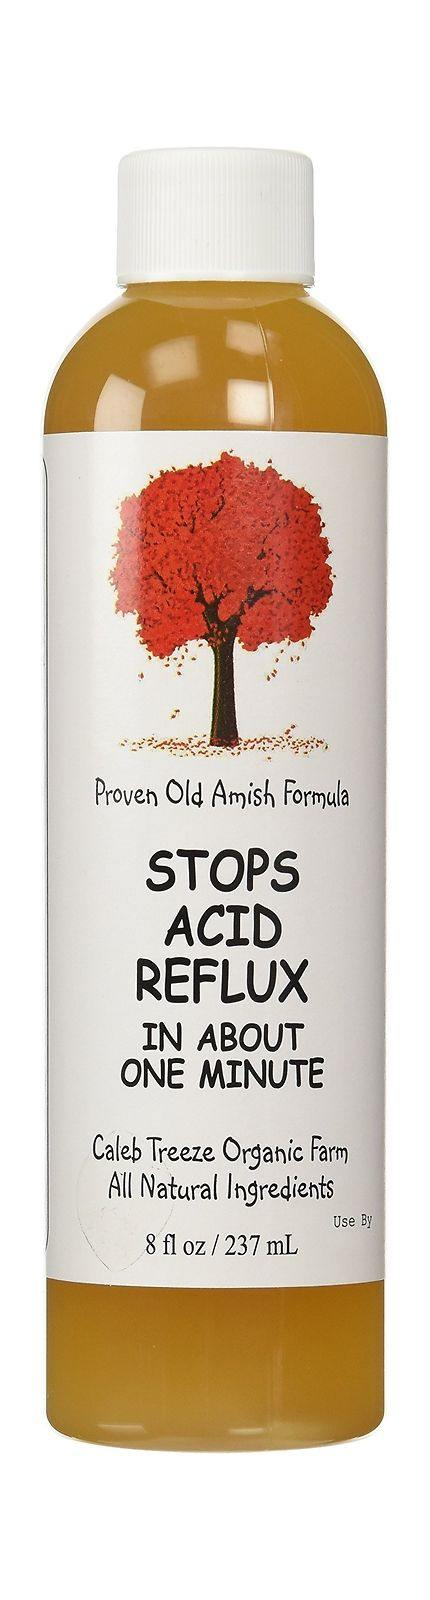 Caleb Treeze - Old Amish Remedy-Stops Acid Reflx in about a minute - 8 fl oz 2-Pack